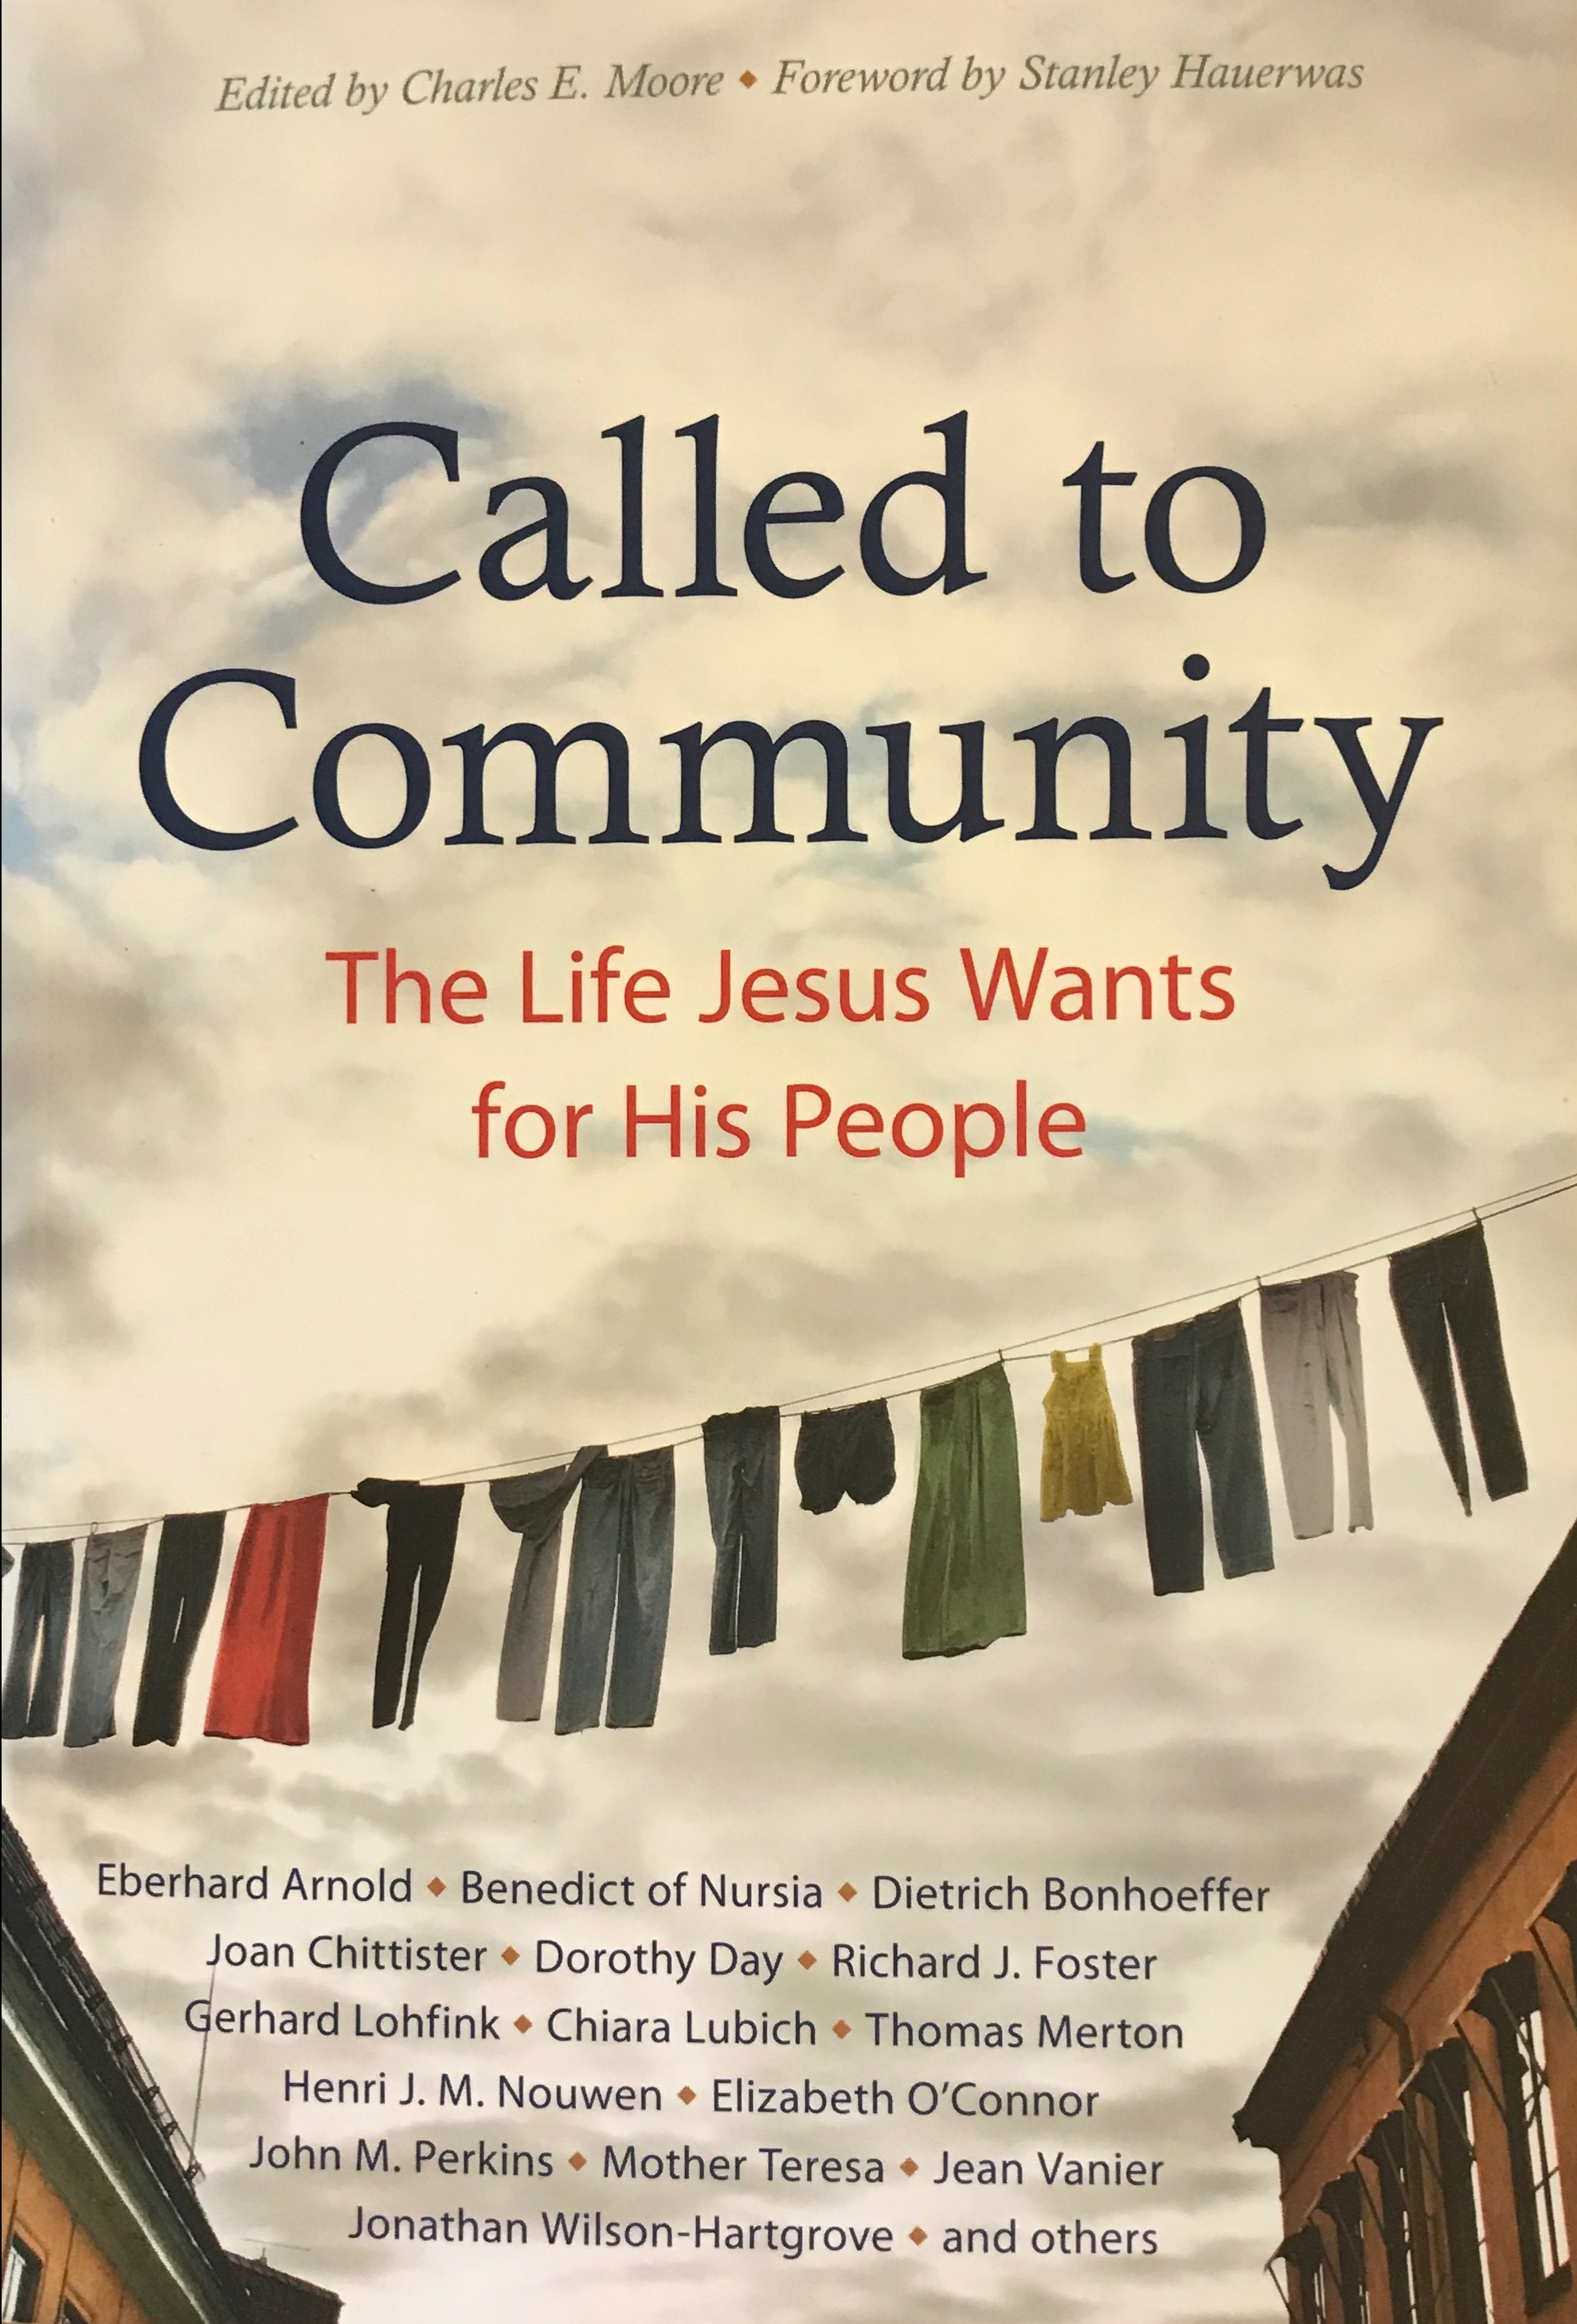 lohfink gerhard jesus and community the social Author profile: gerhard lohfink latest news, books, and speaking engagement inquiries we are happy to assist you with your interest in booking gerhard lohfink please fill out the form on the right, providing details about your organization and the type of event you are planning, and an agent will be in touch shortly.